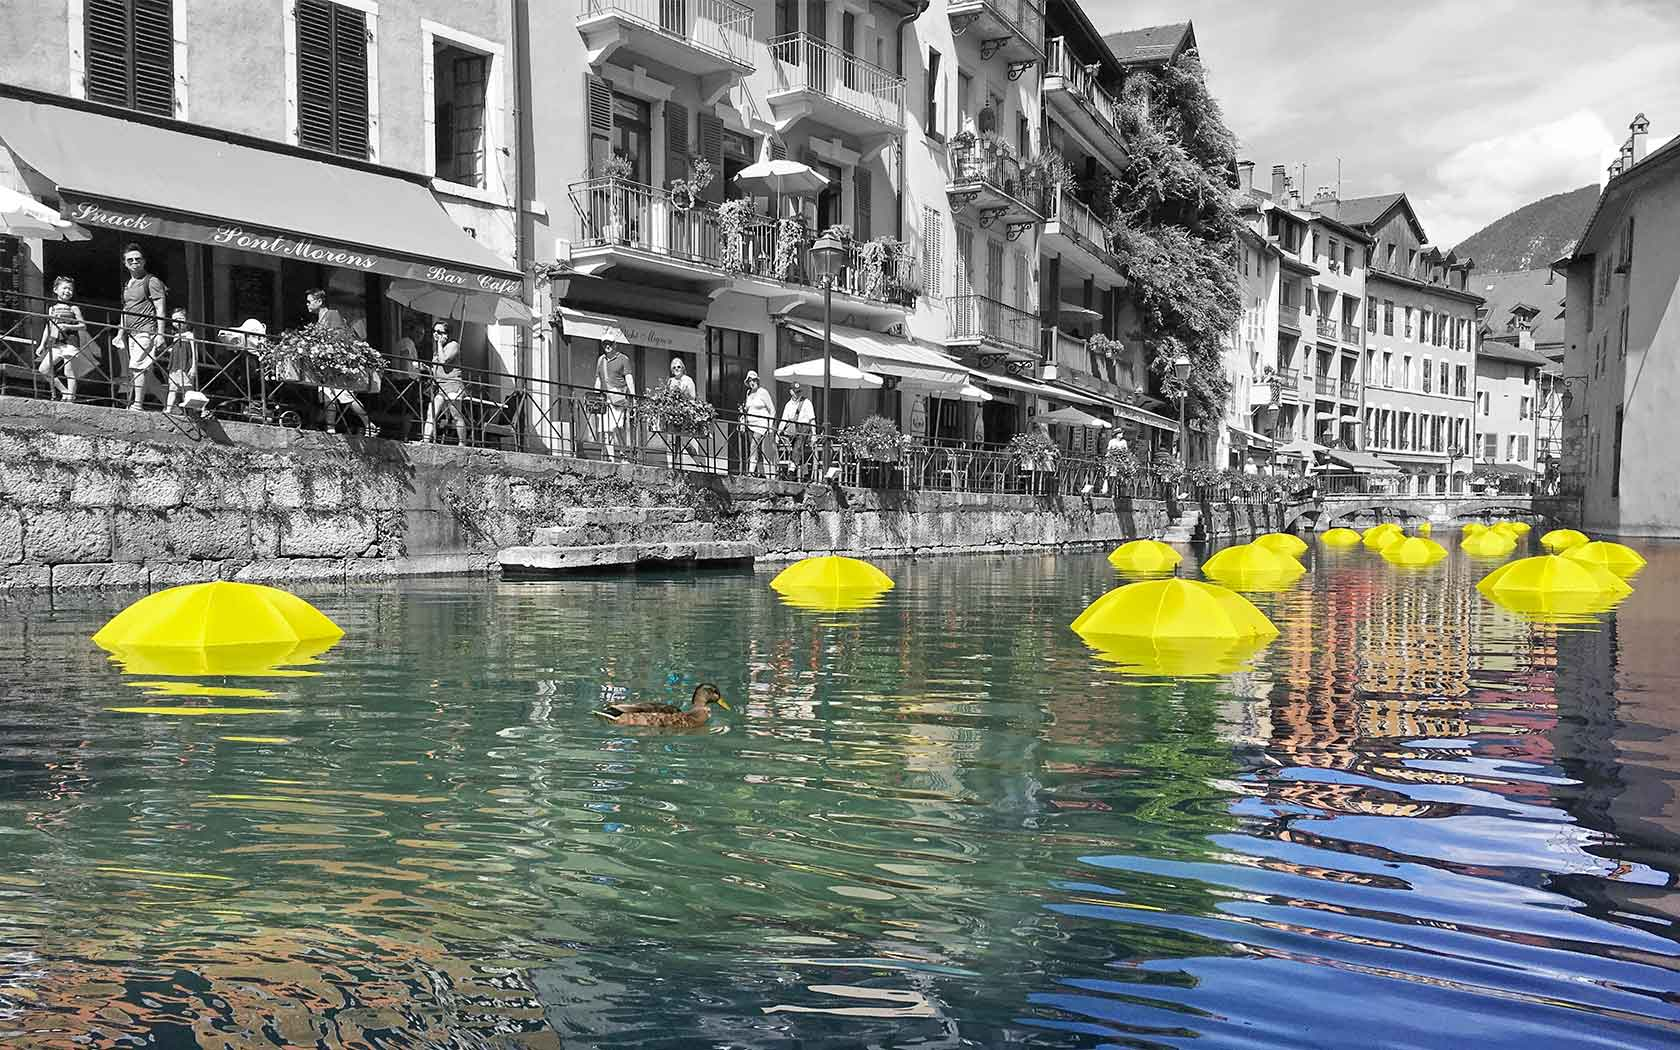 Floating Flowers – Thiou river, Annecy